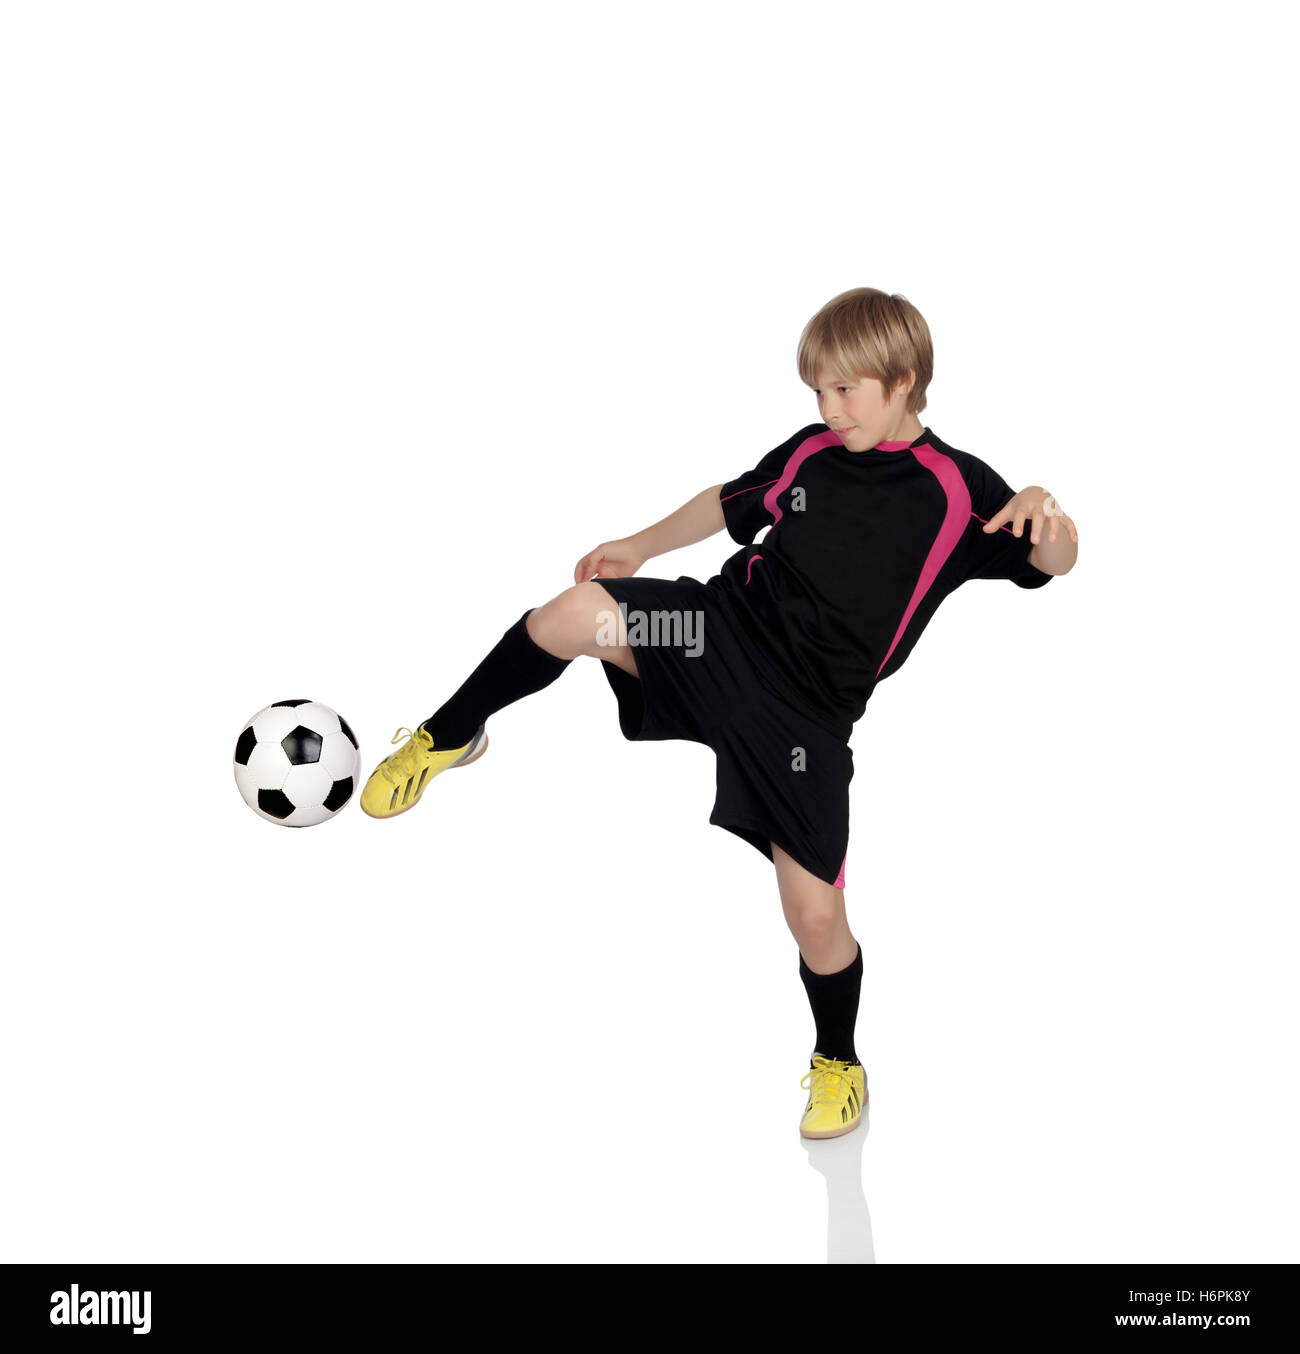 Preteen playing soccer isolated on a white background - Stock Image